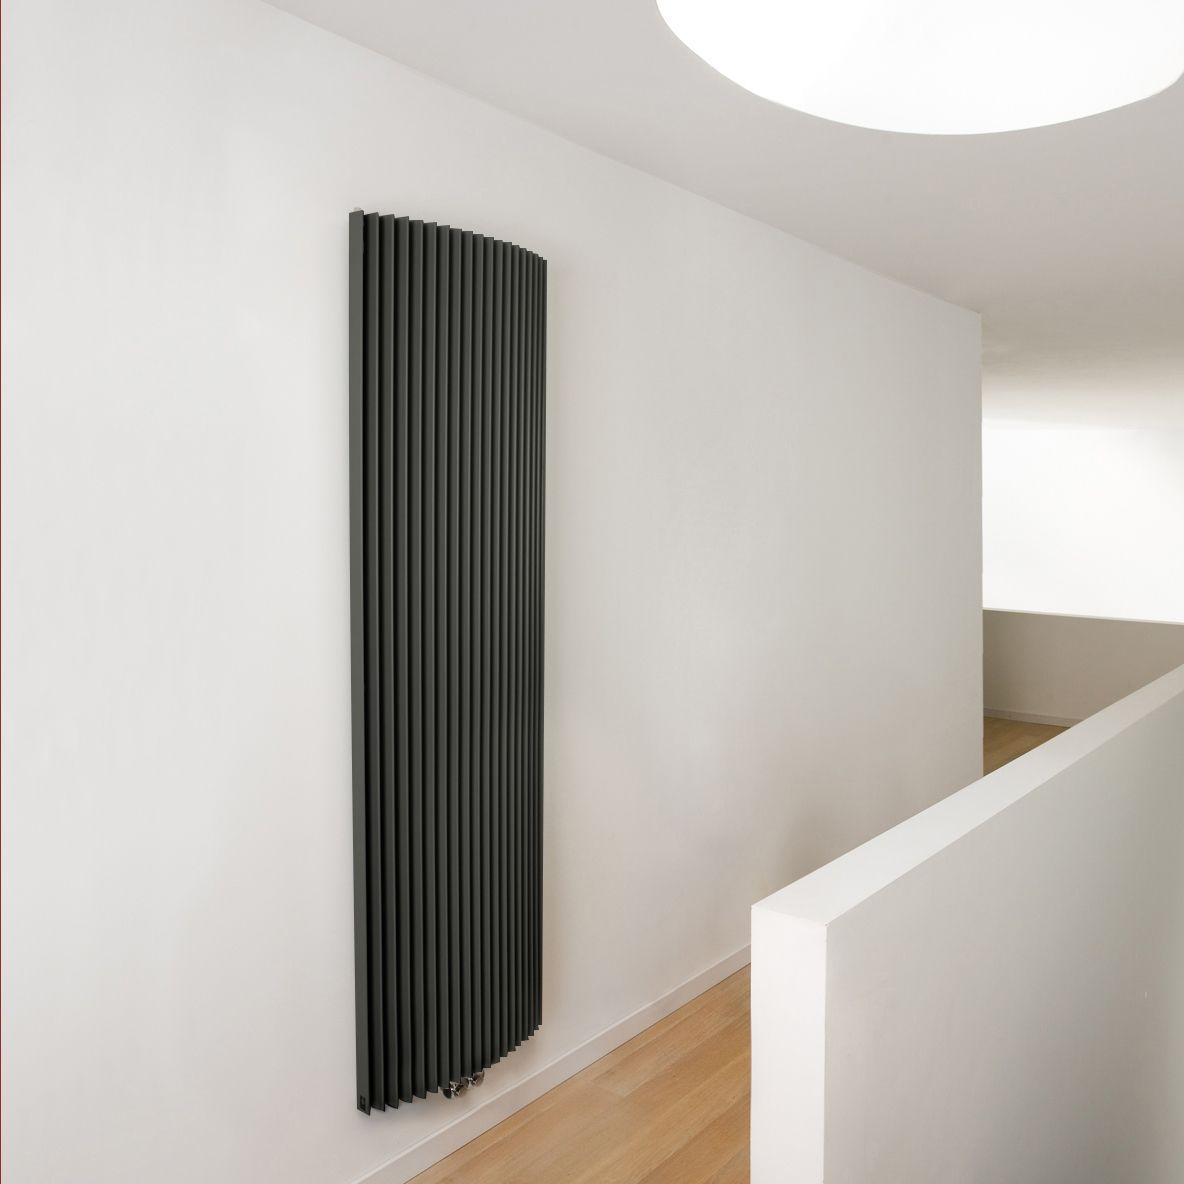 Jaga Iguana Arco Vertical Radiator Anthracite (H)1800 mm